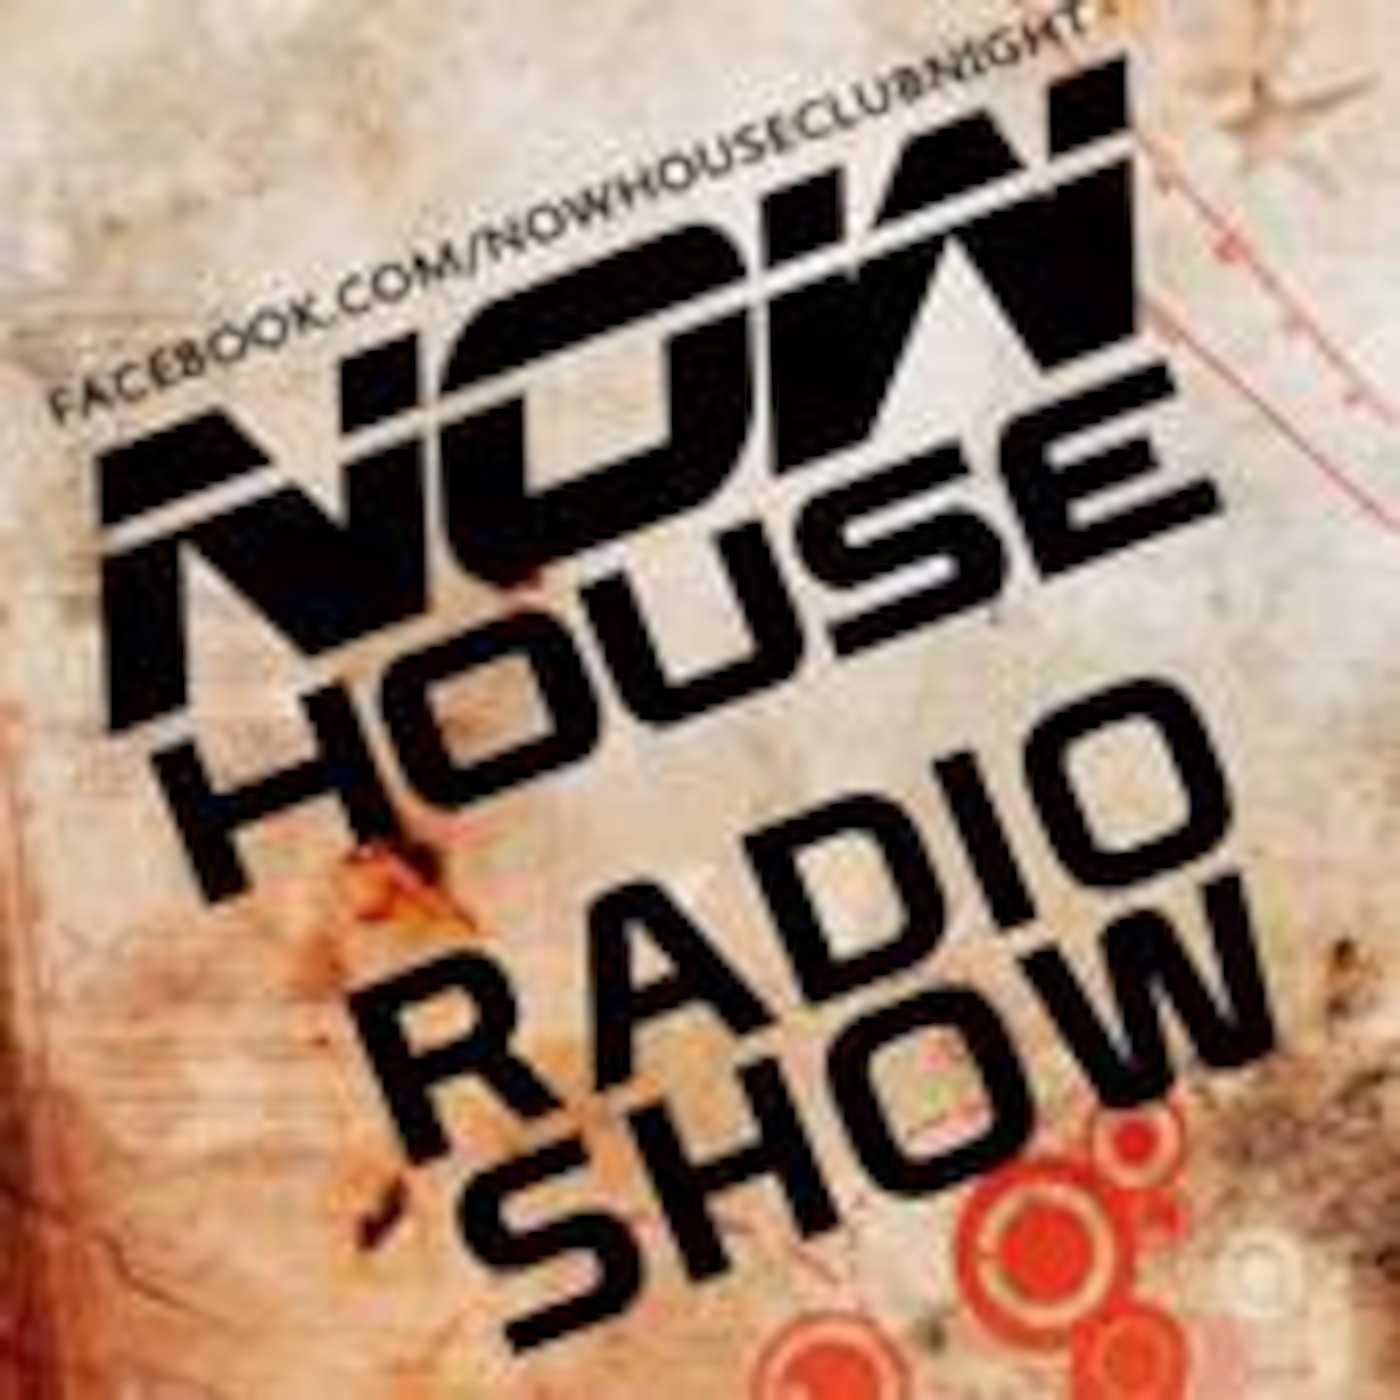 Now House Radio Show